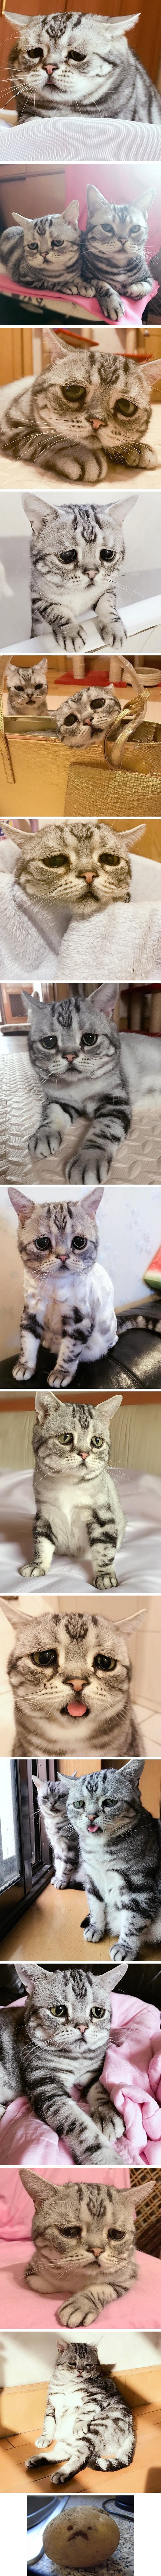 Meet Luhu, The Most Unhappy Cat In The World That Will Break Your Heart